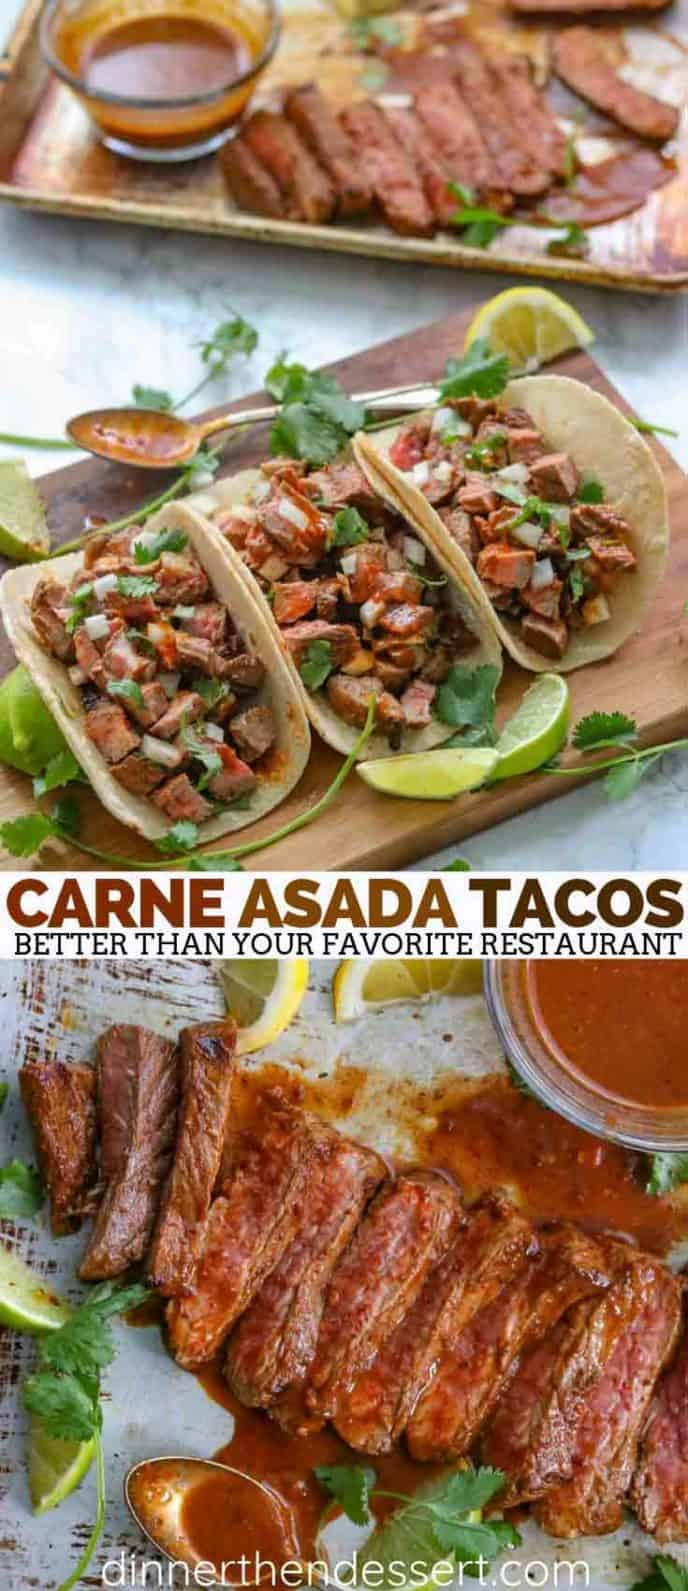 Tacos with Carne Asada